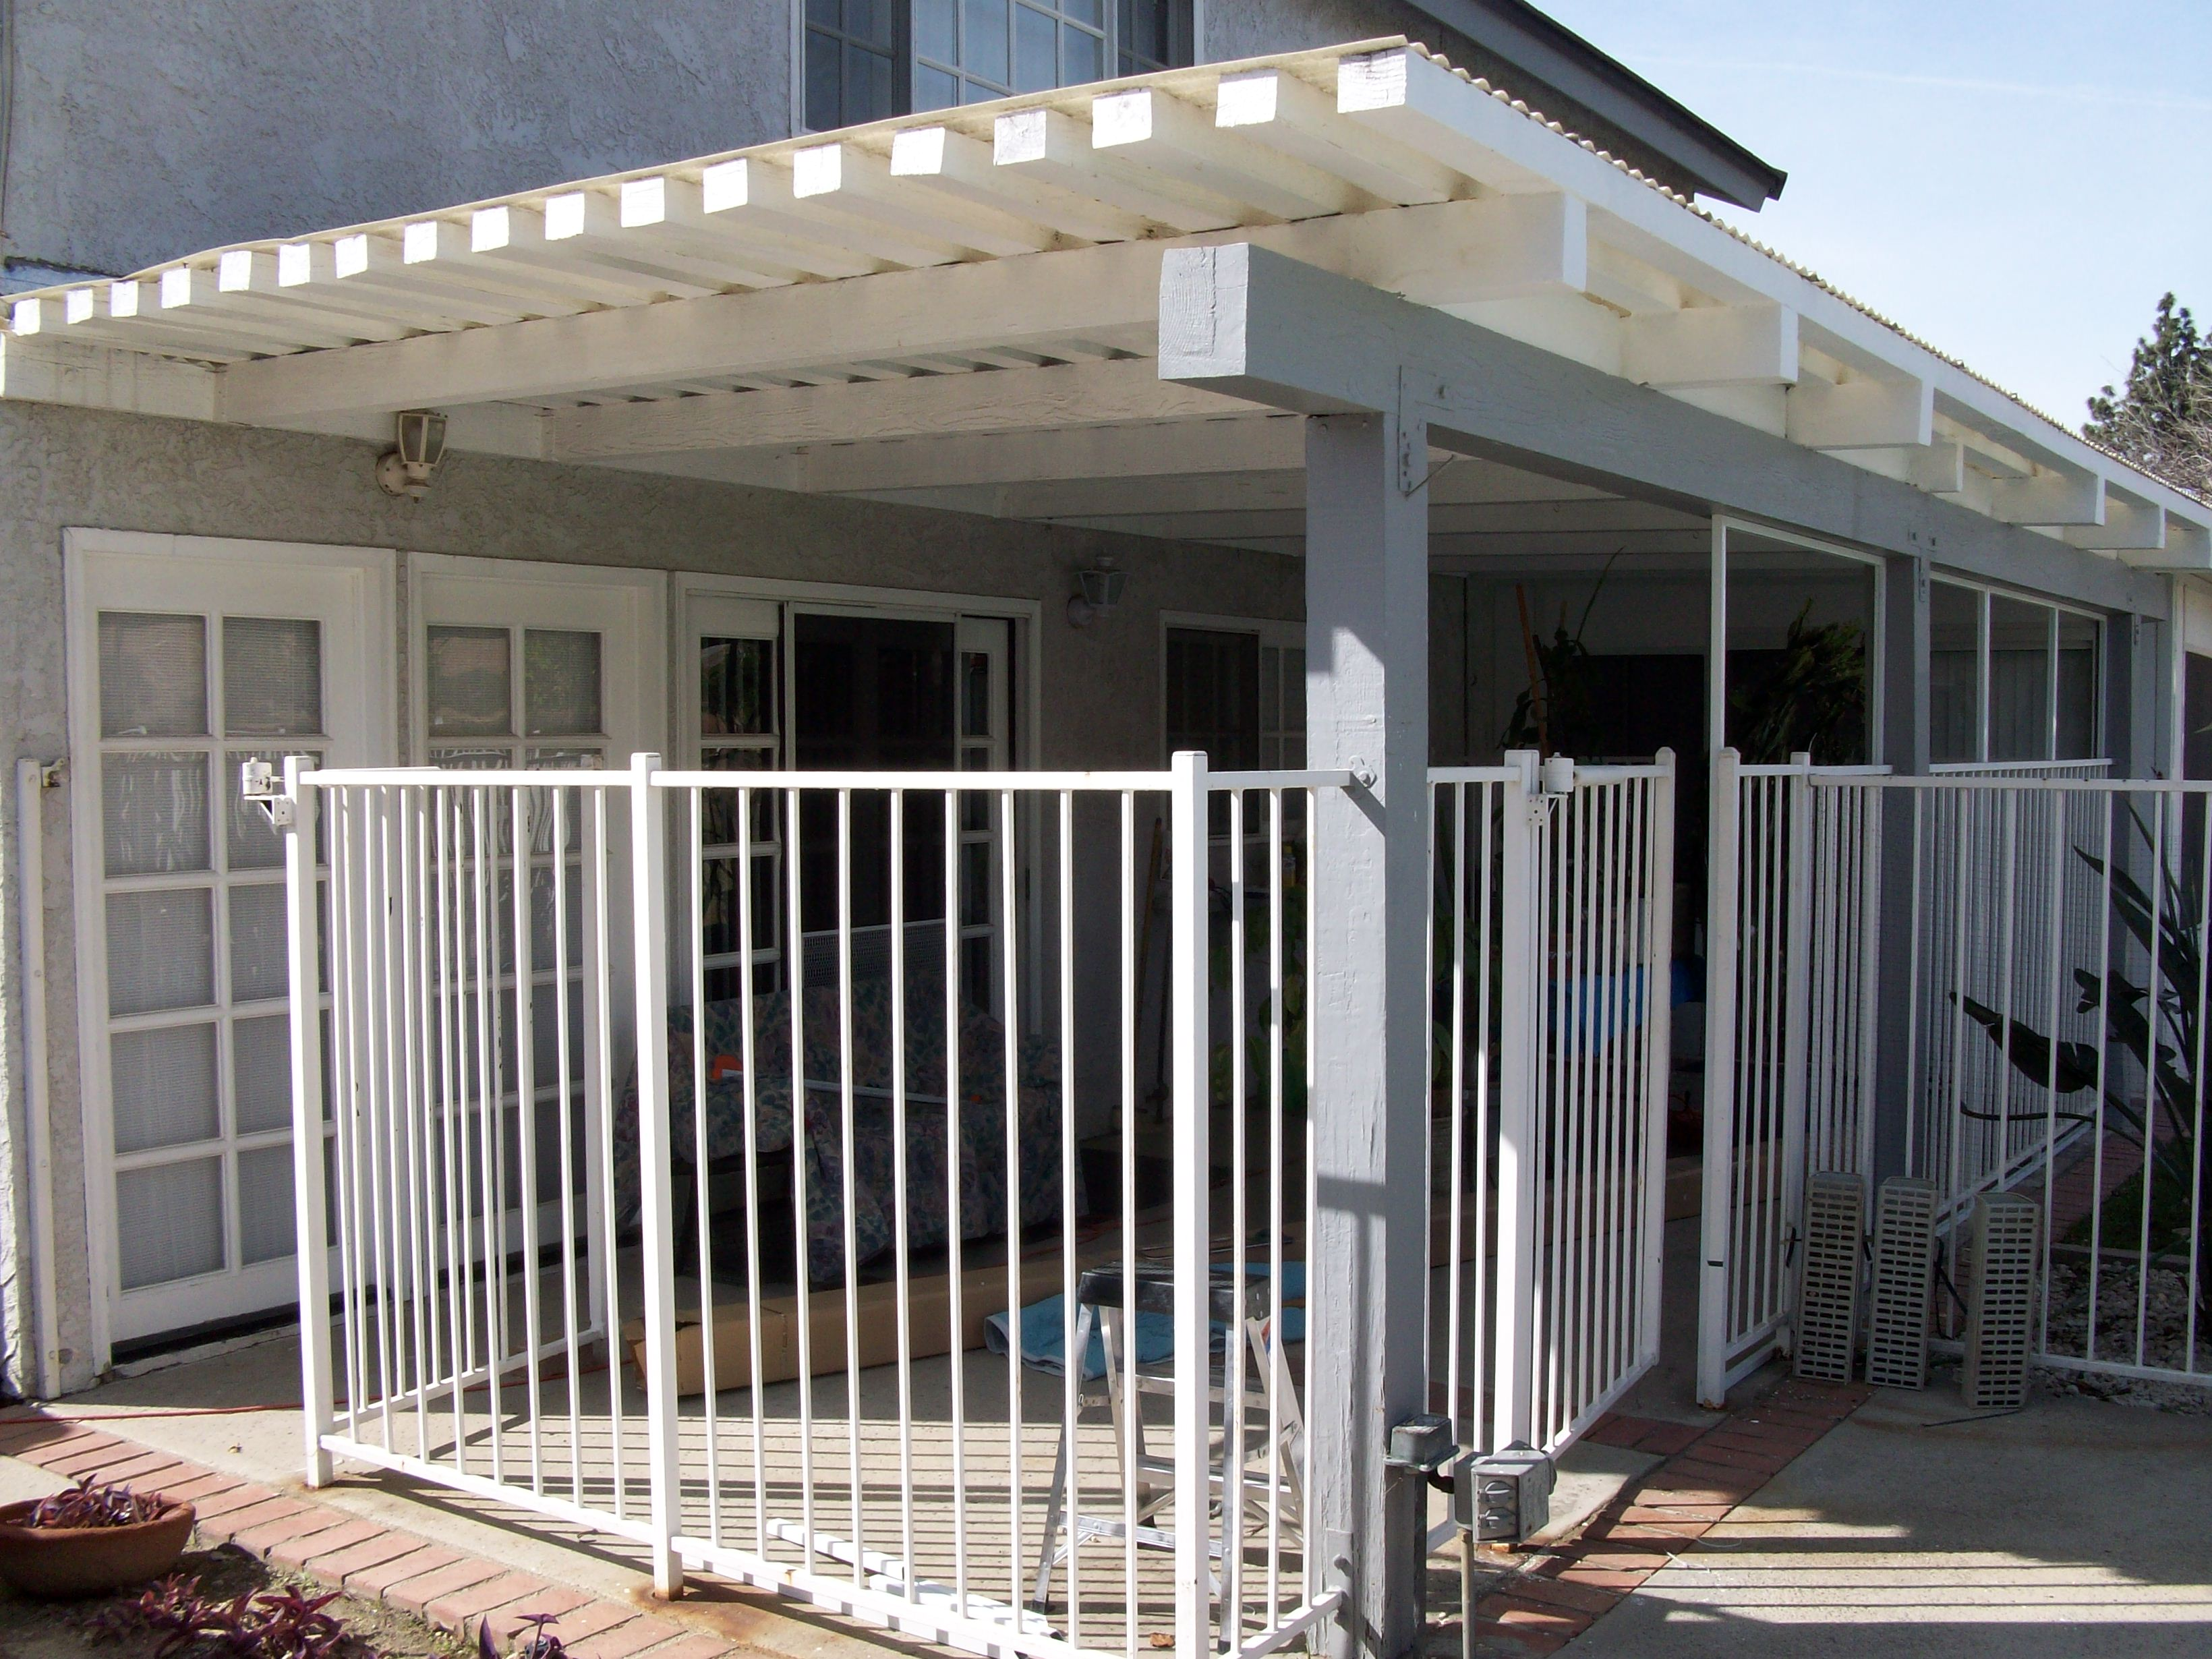 Patio enclosure Built and Installed in Agoura Hills |